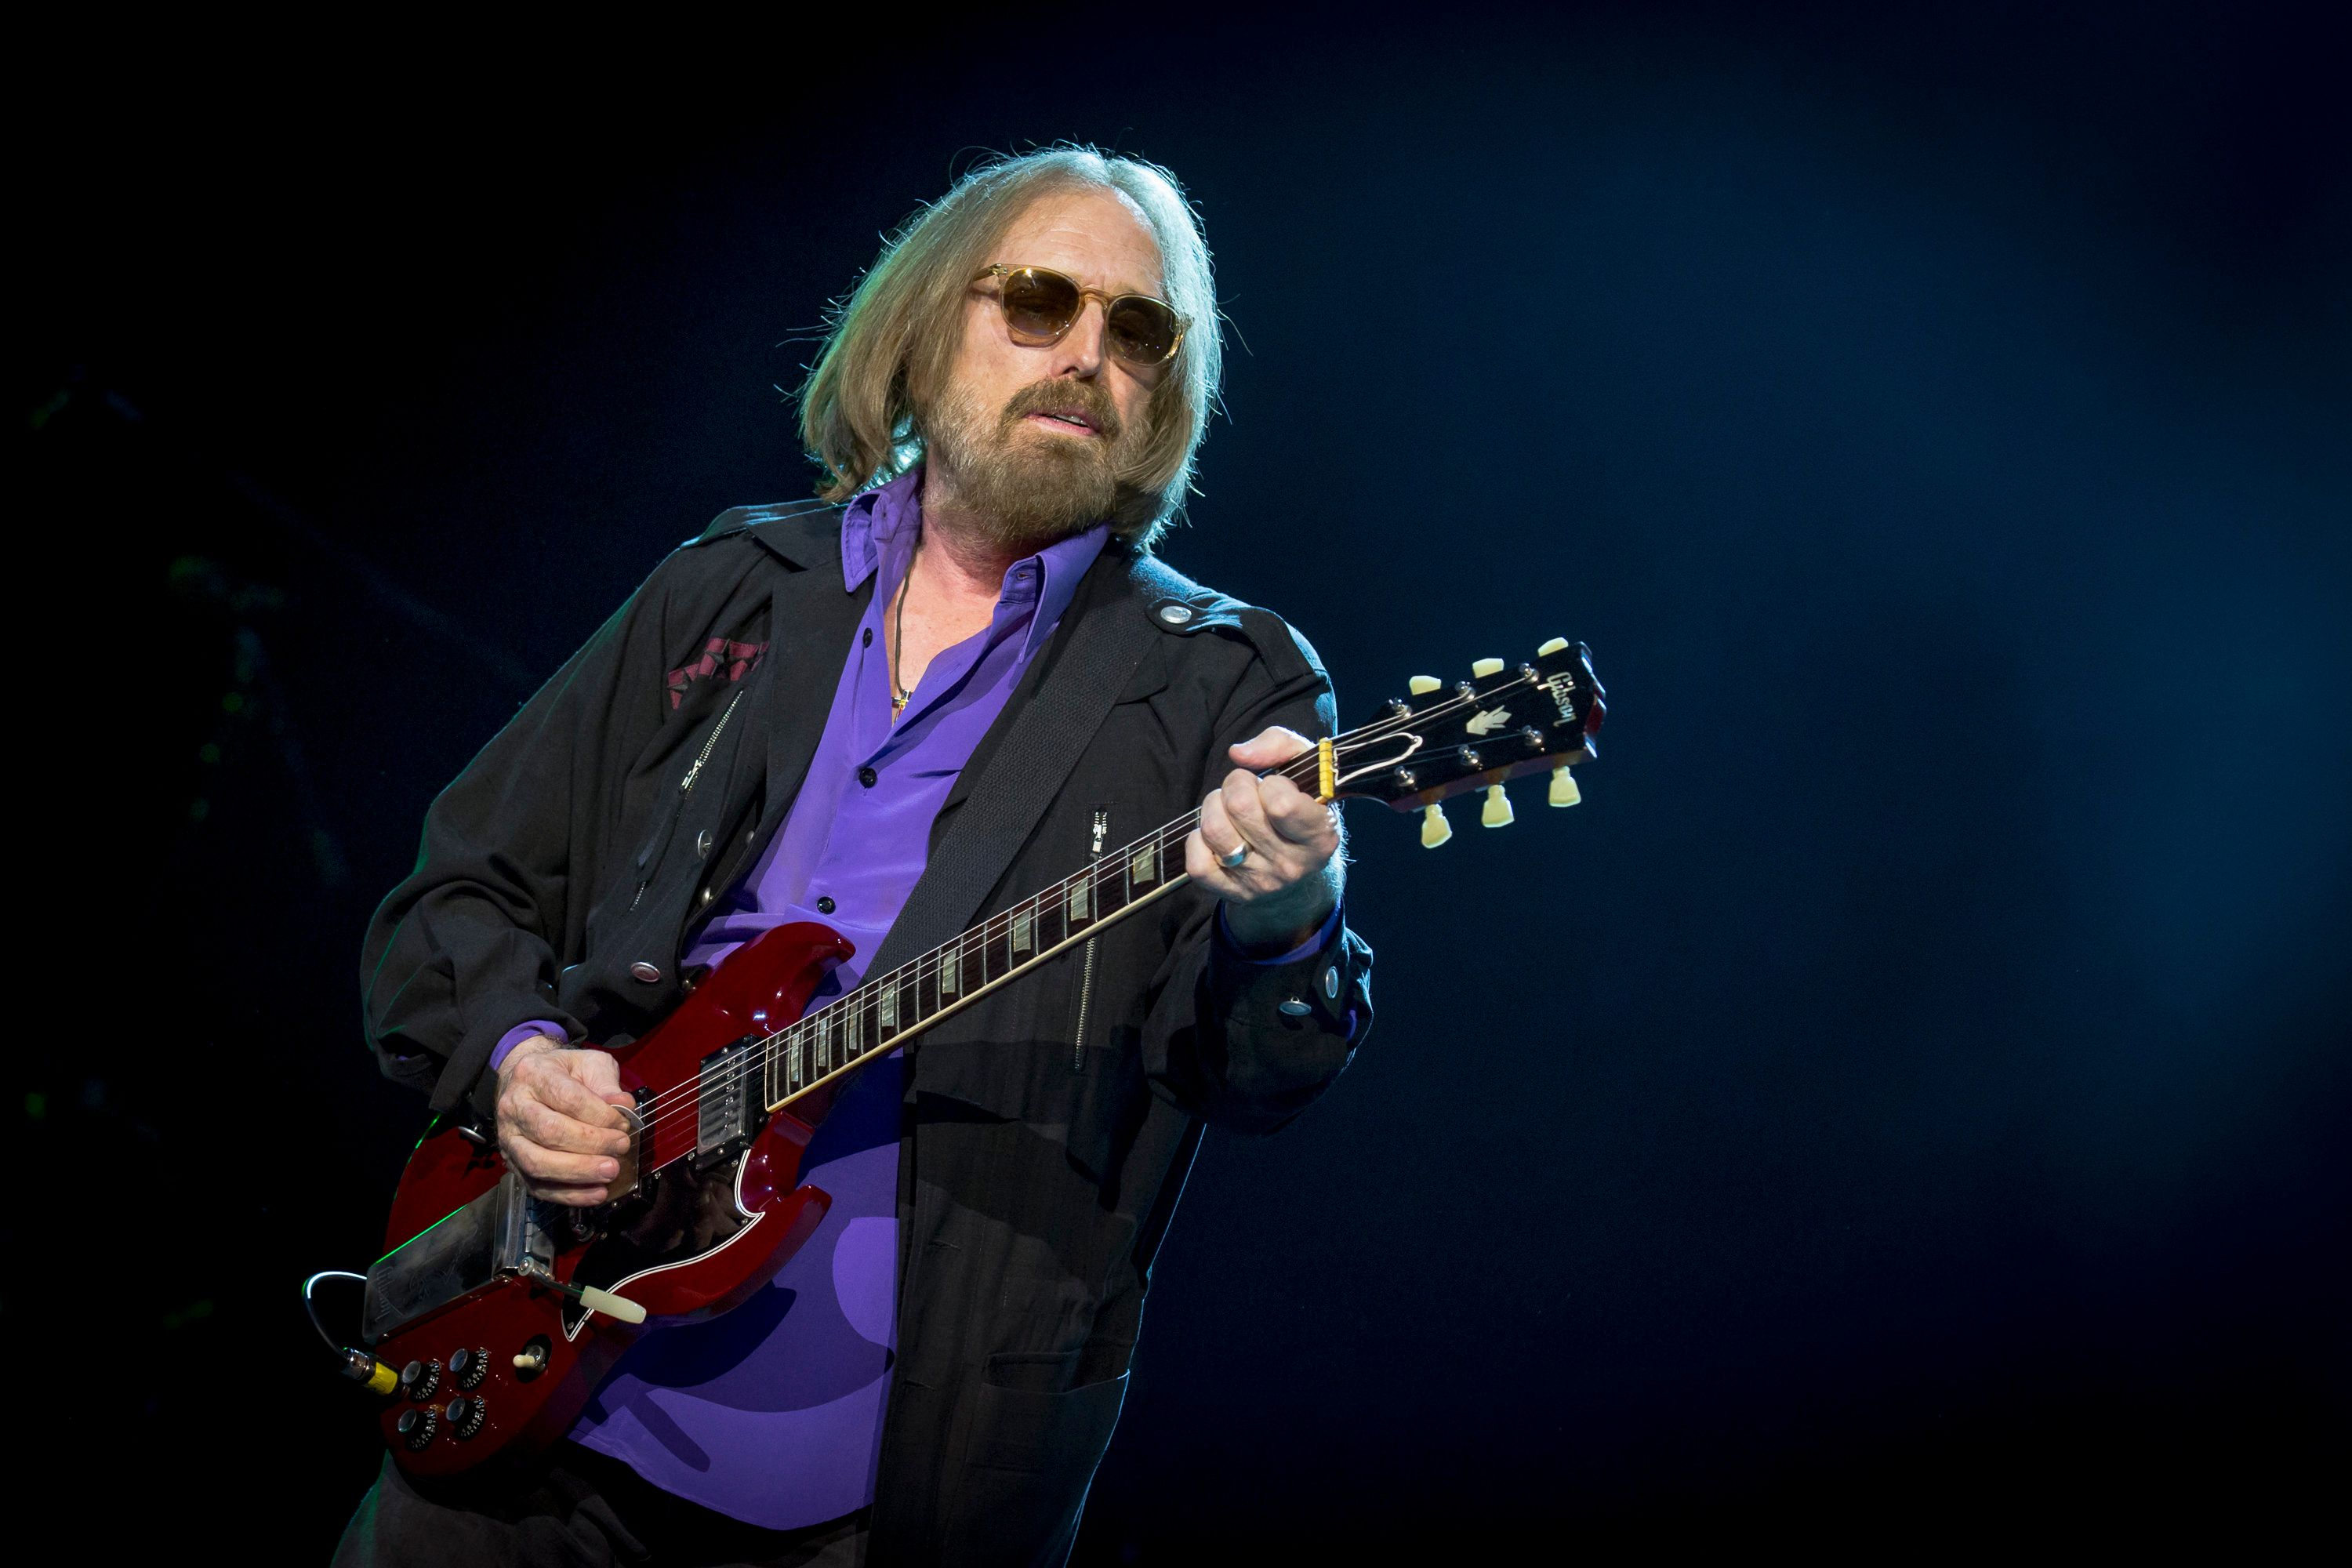 OTTAWA, ON - JULY 16:  Tom Petty of Tom Petty And The Heartbreakers performs on Day 10 of the RBC Bluesfest on July 16, 2017 in Ottawa, Canada.  (Photo by Mark Horton/Getty Images for ABA)